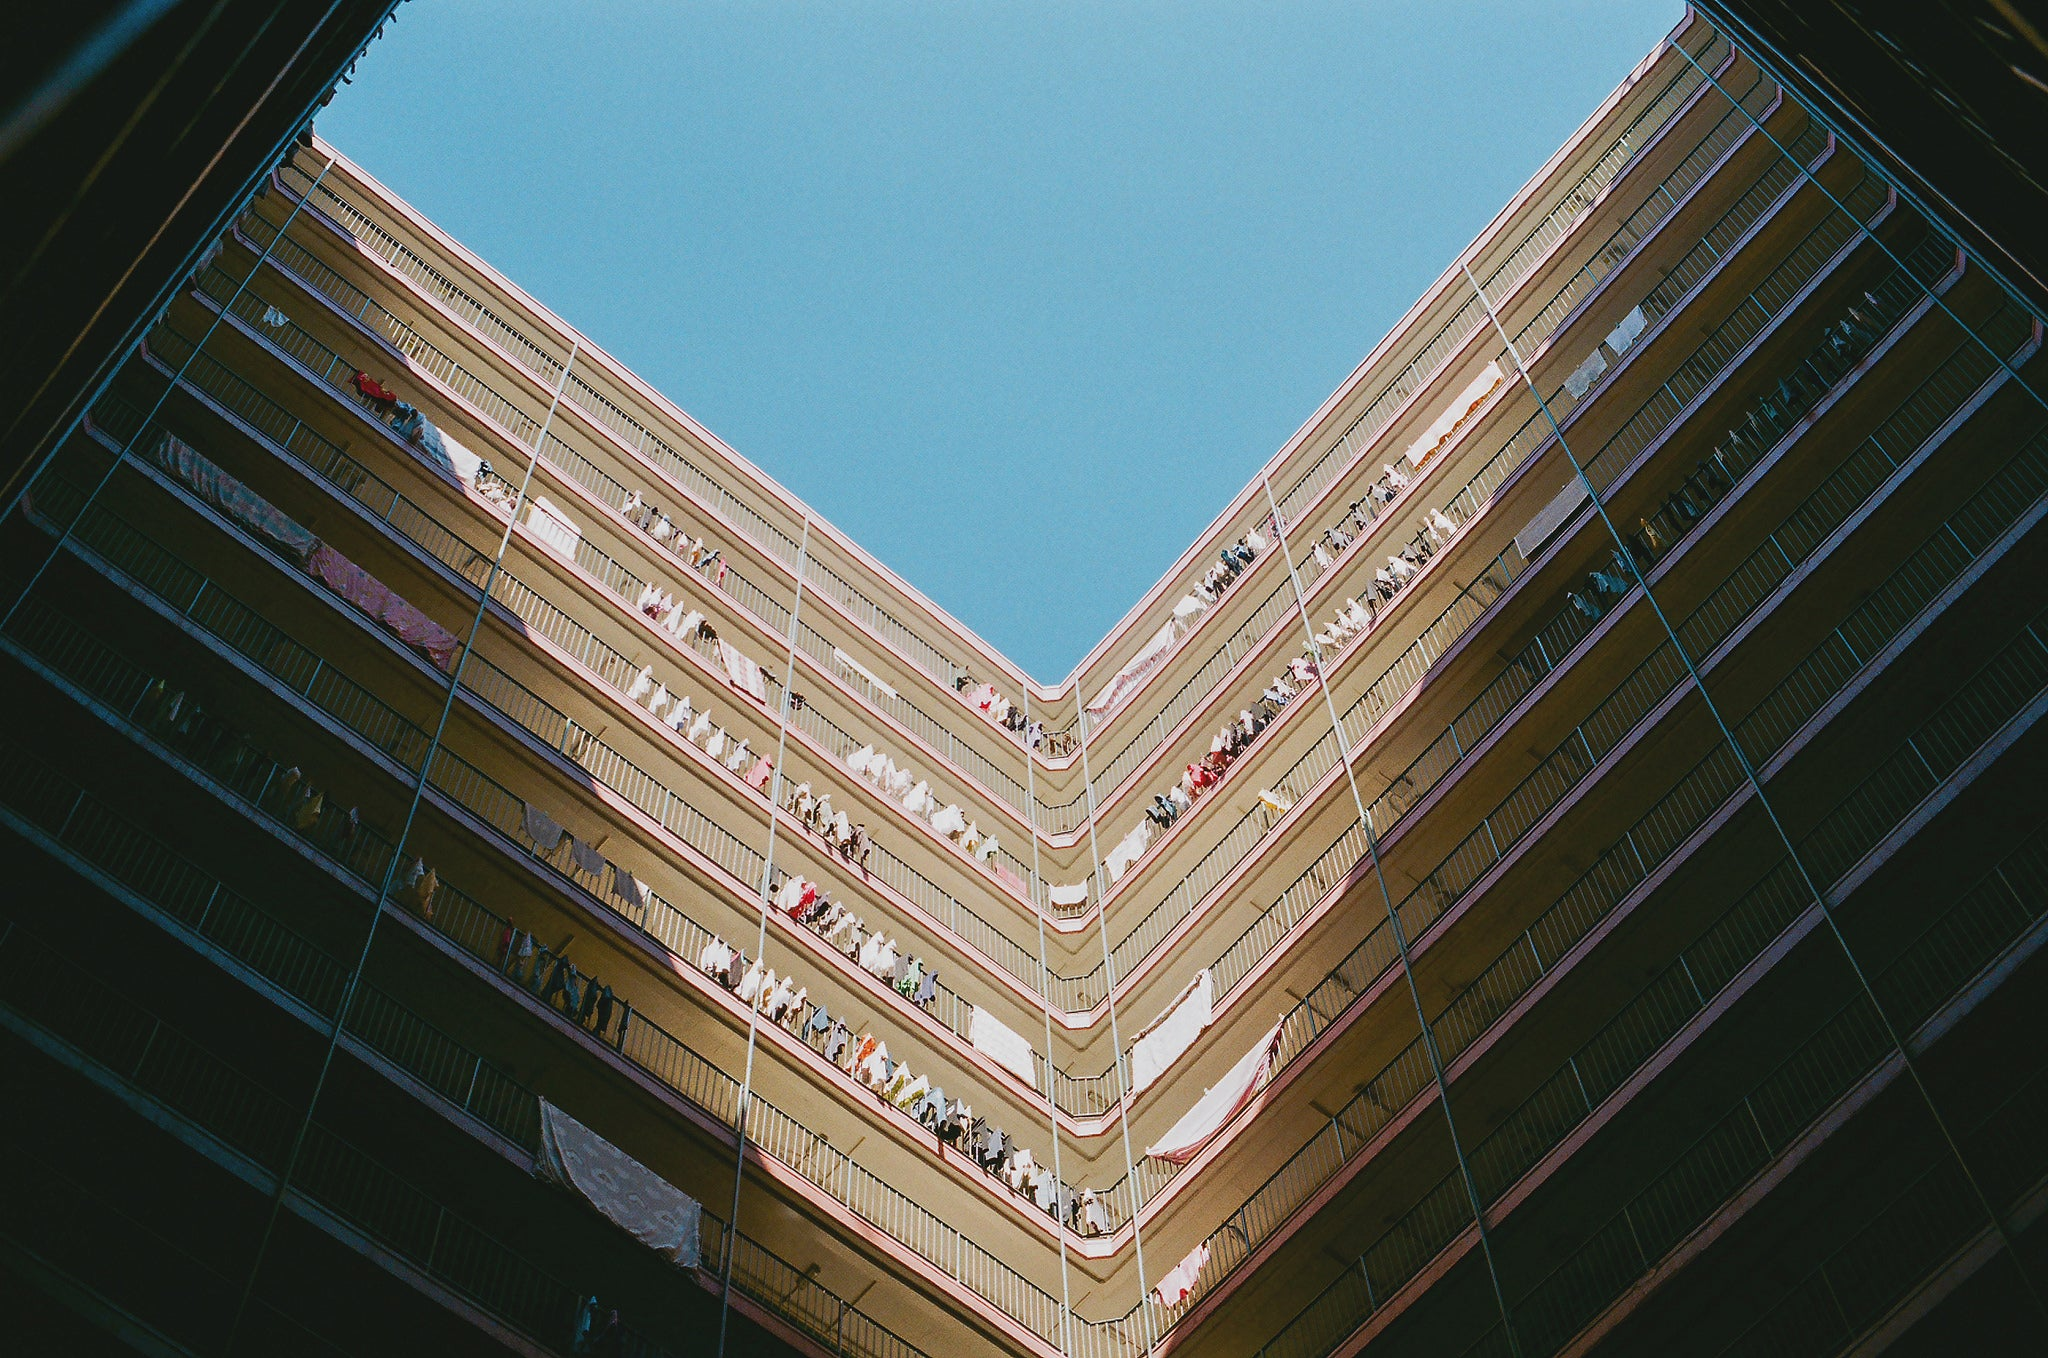 Photo of buildings and sky shot on agfaphoto vista iso 200 35mm colour film